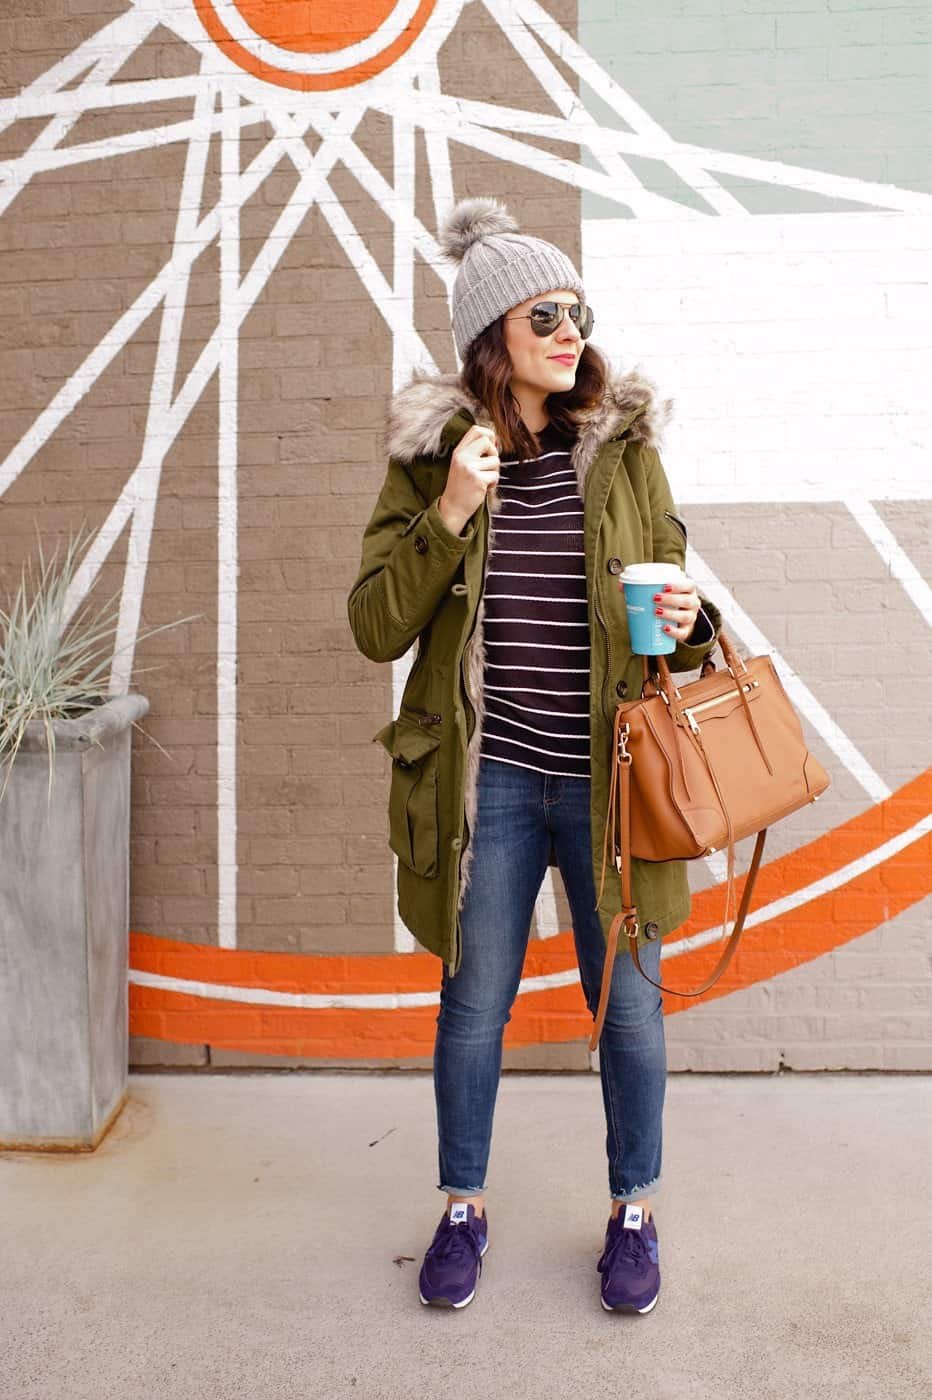 Topshop Parka and beanie outfit - @mystylevita